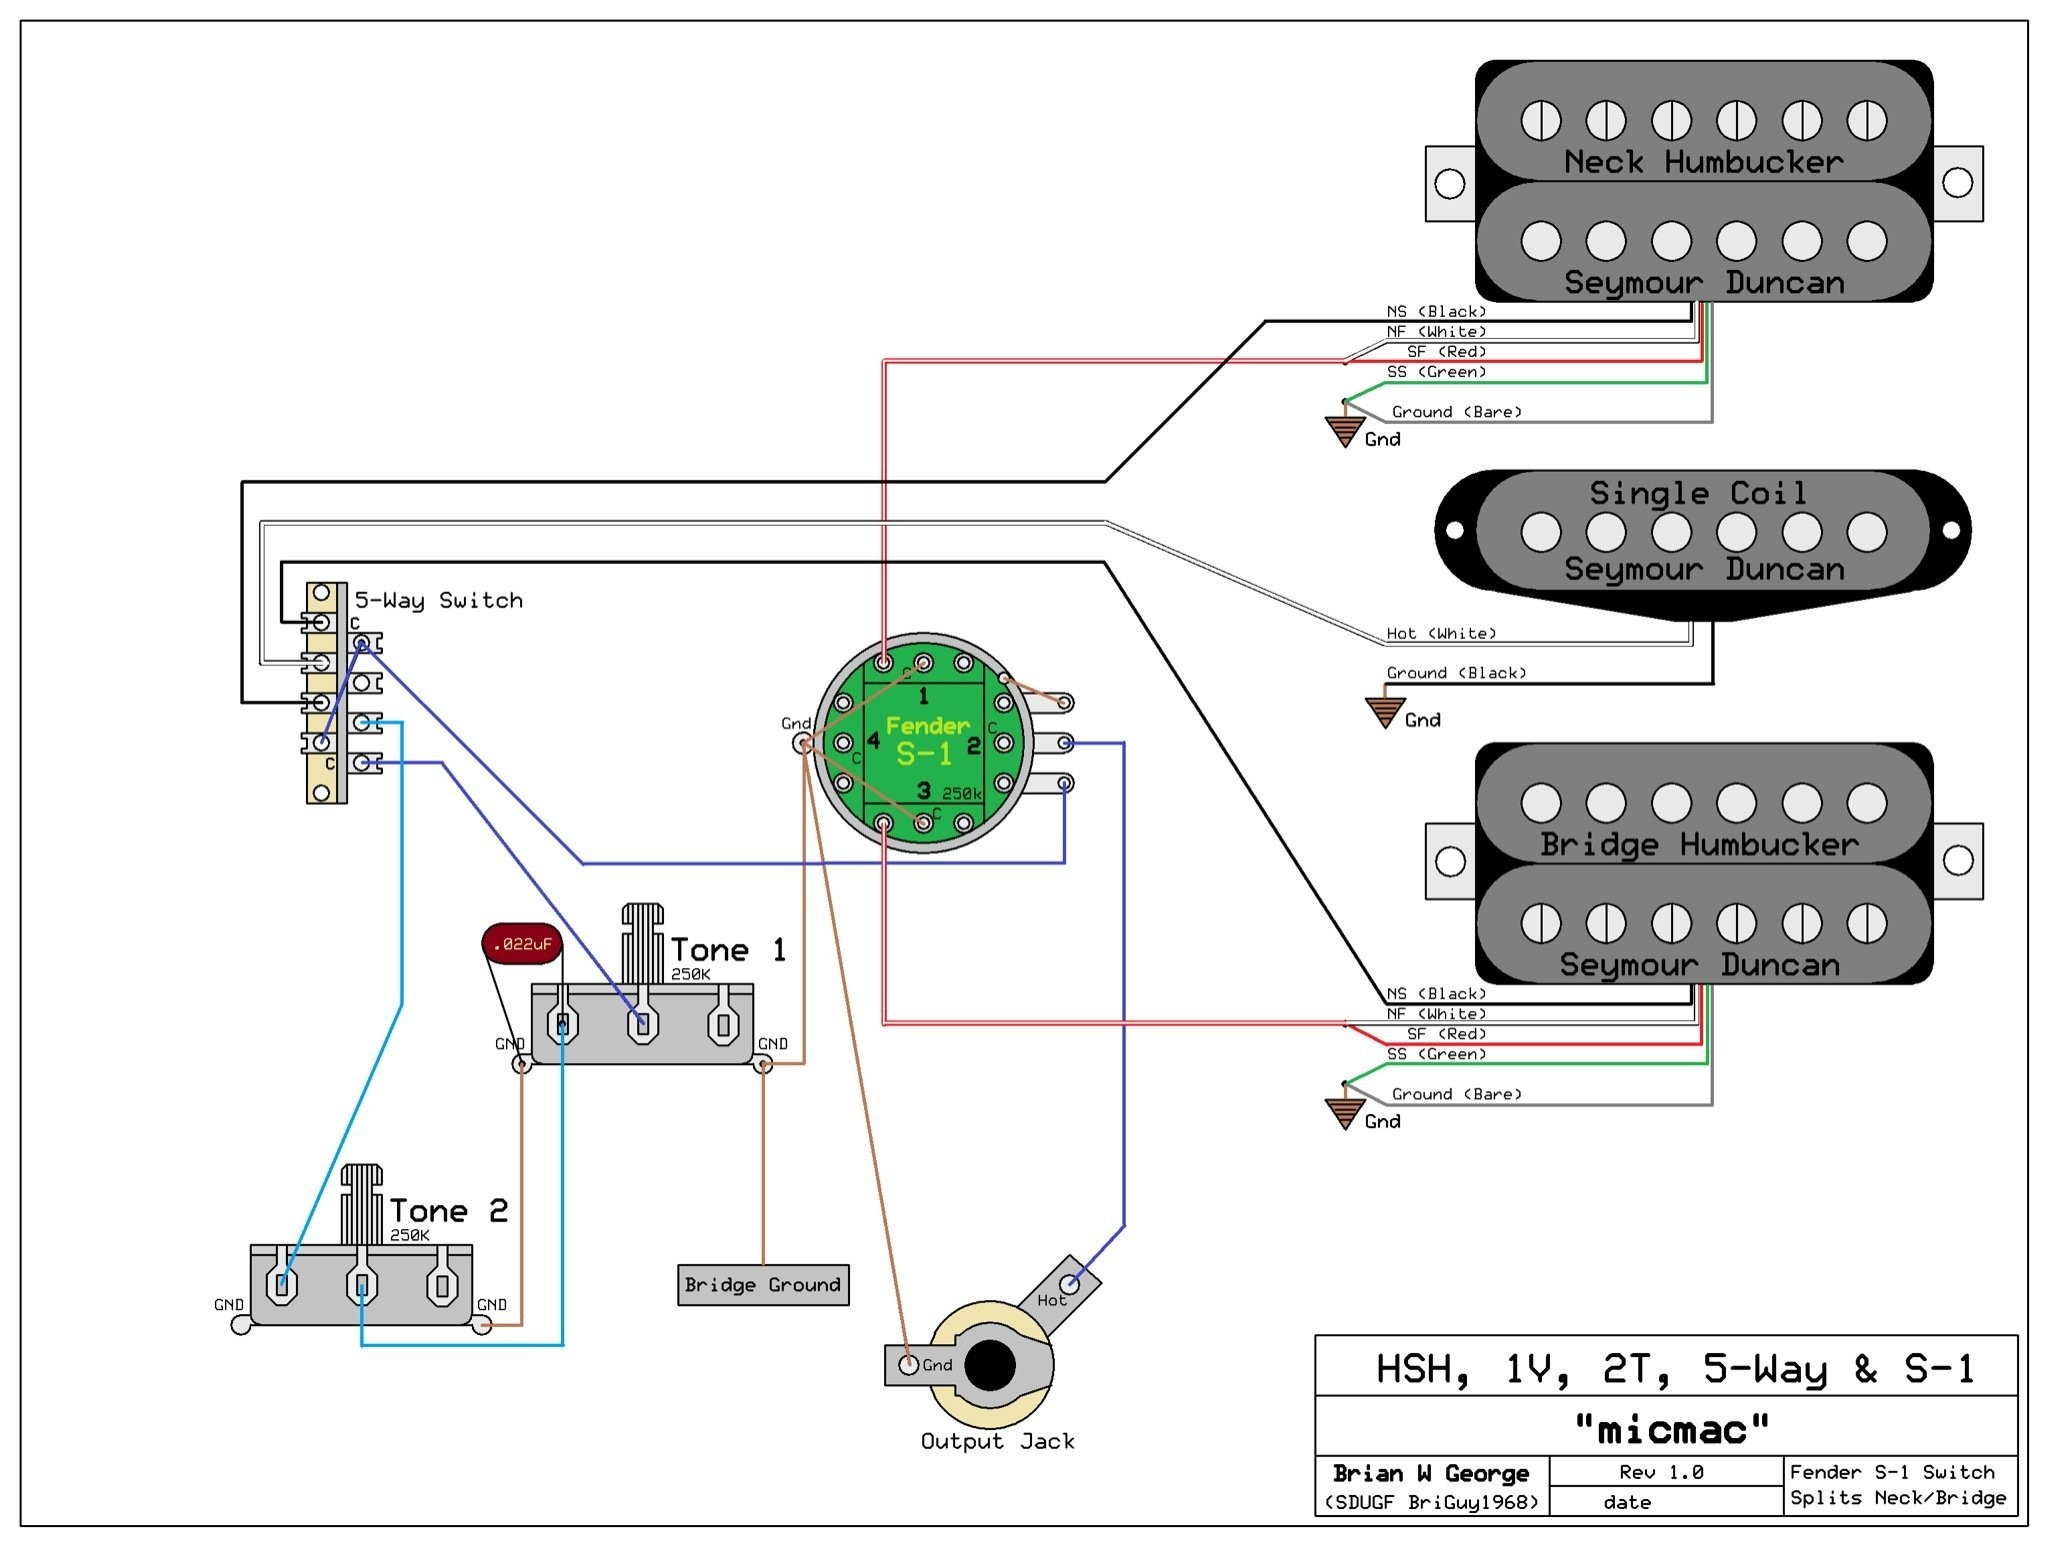 Fender S-1 Switching Diagram Lk 6405] Fender Lace Sensor Wiring Wiring Diagram Of Fender S-1 Switching Diagram